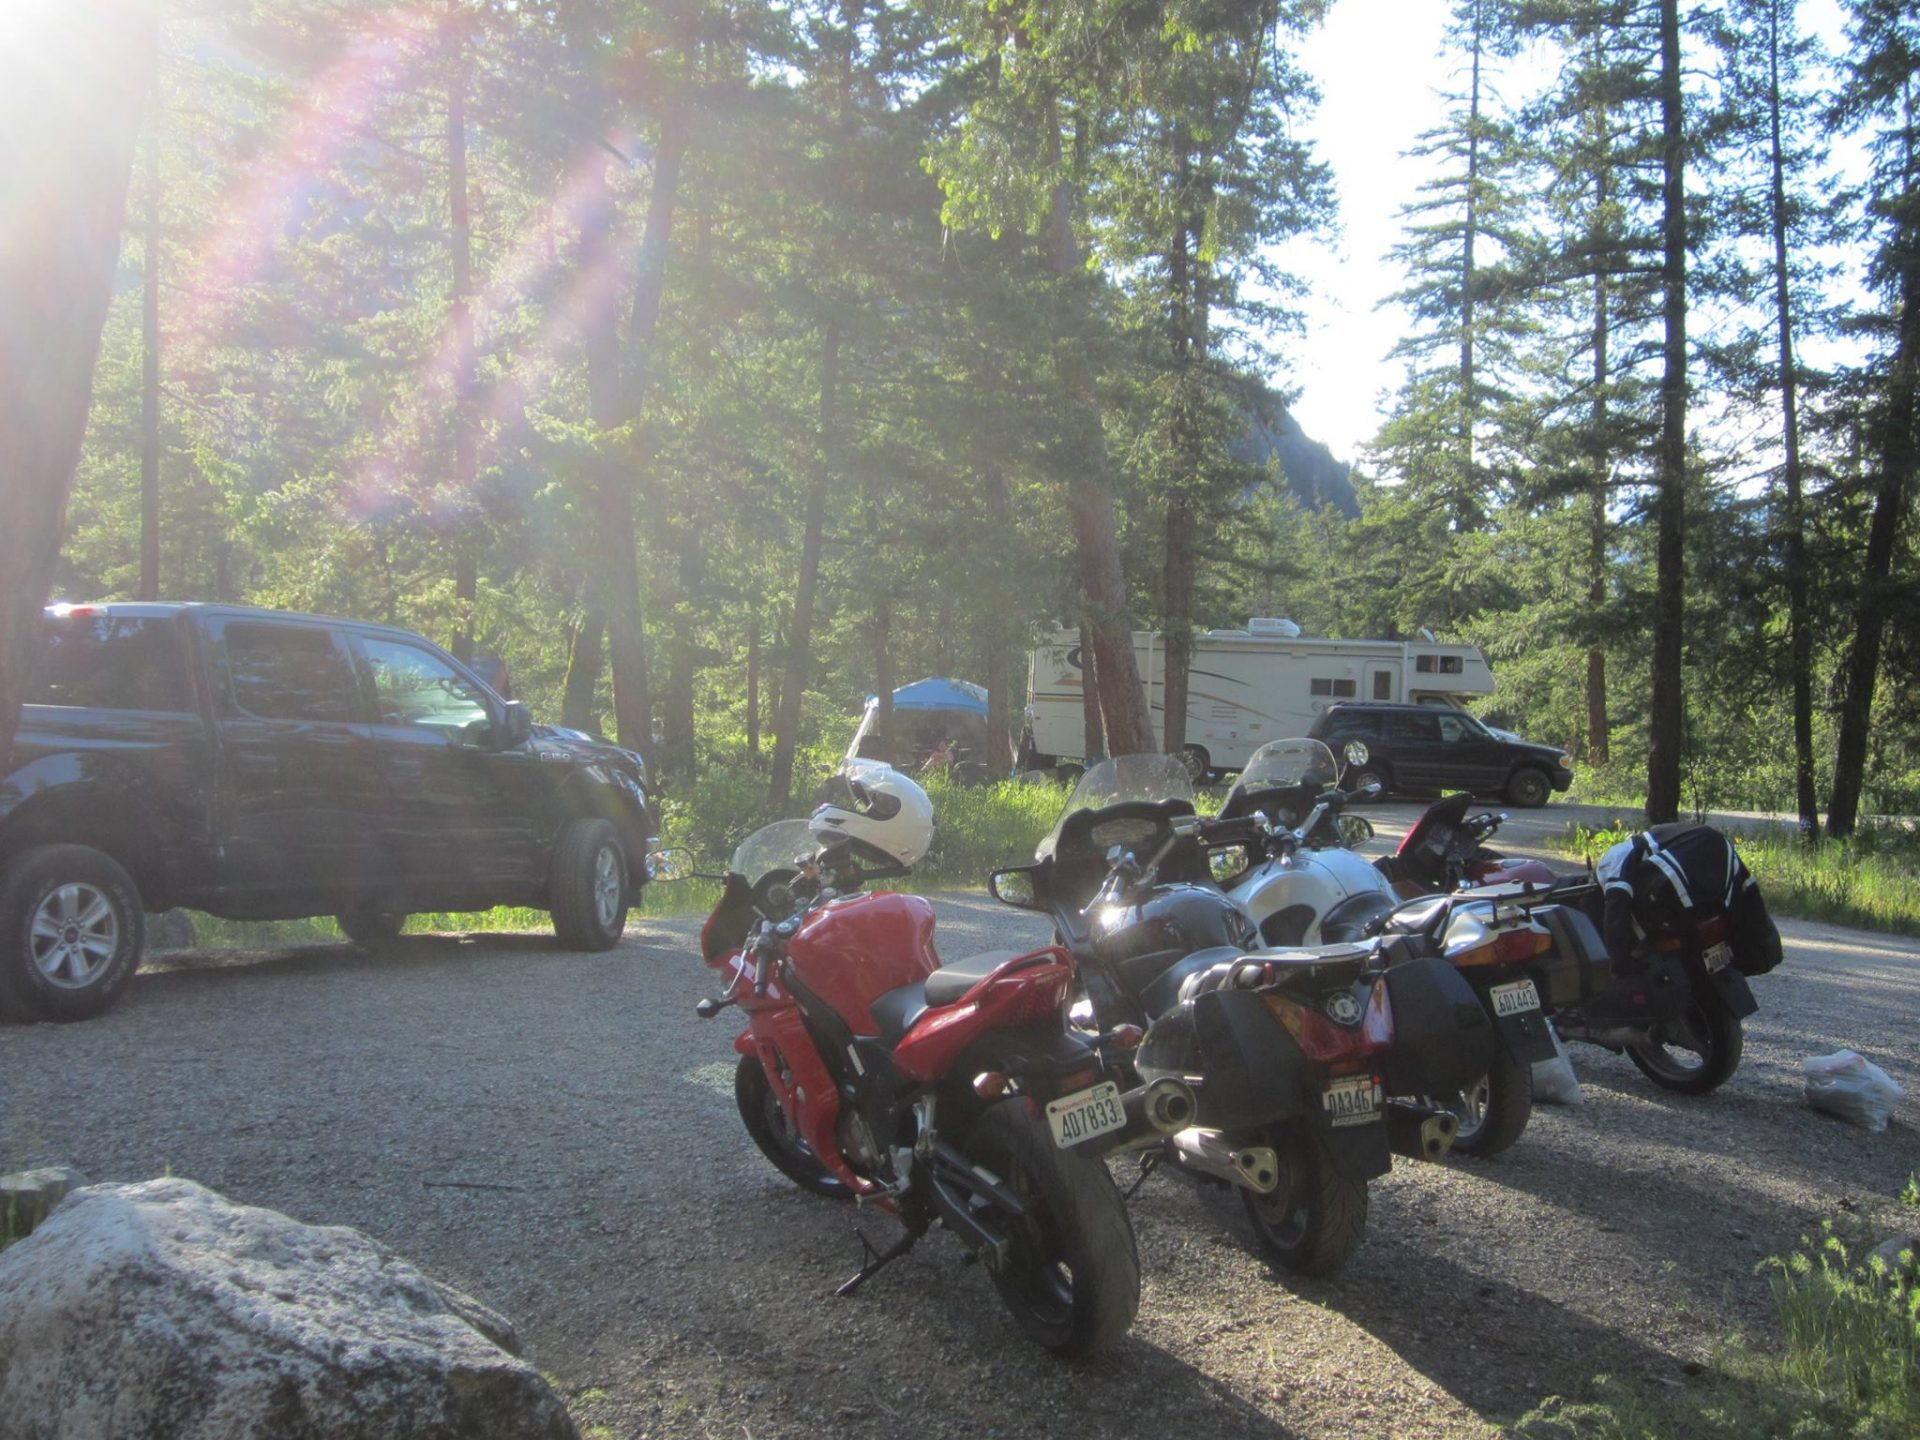 Campsite with Motos 2017